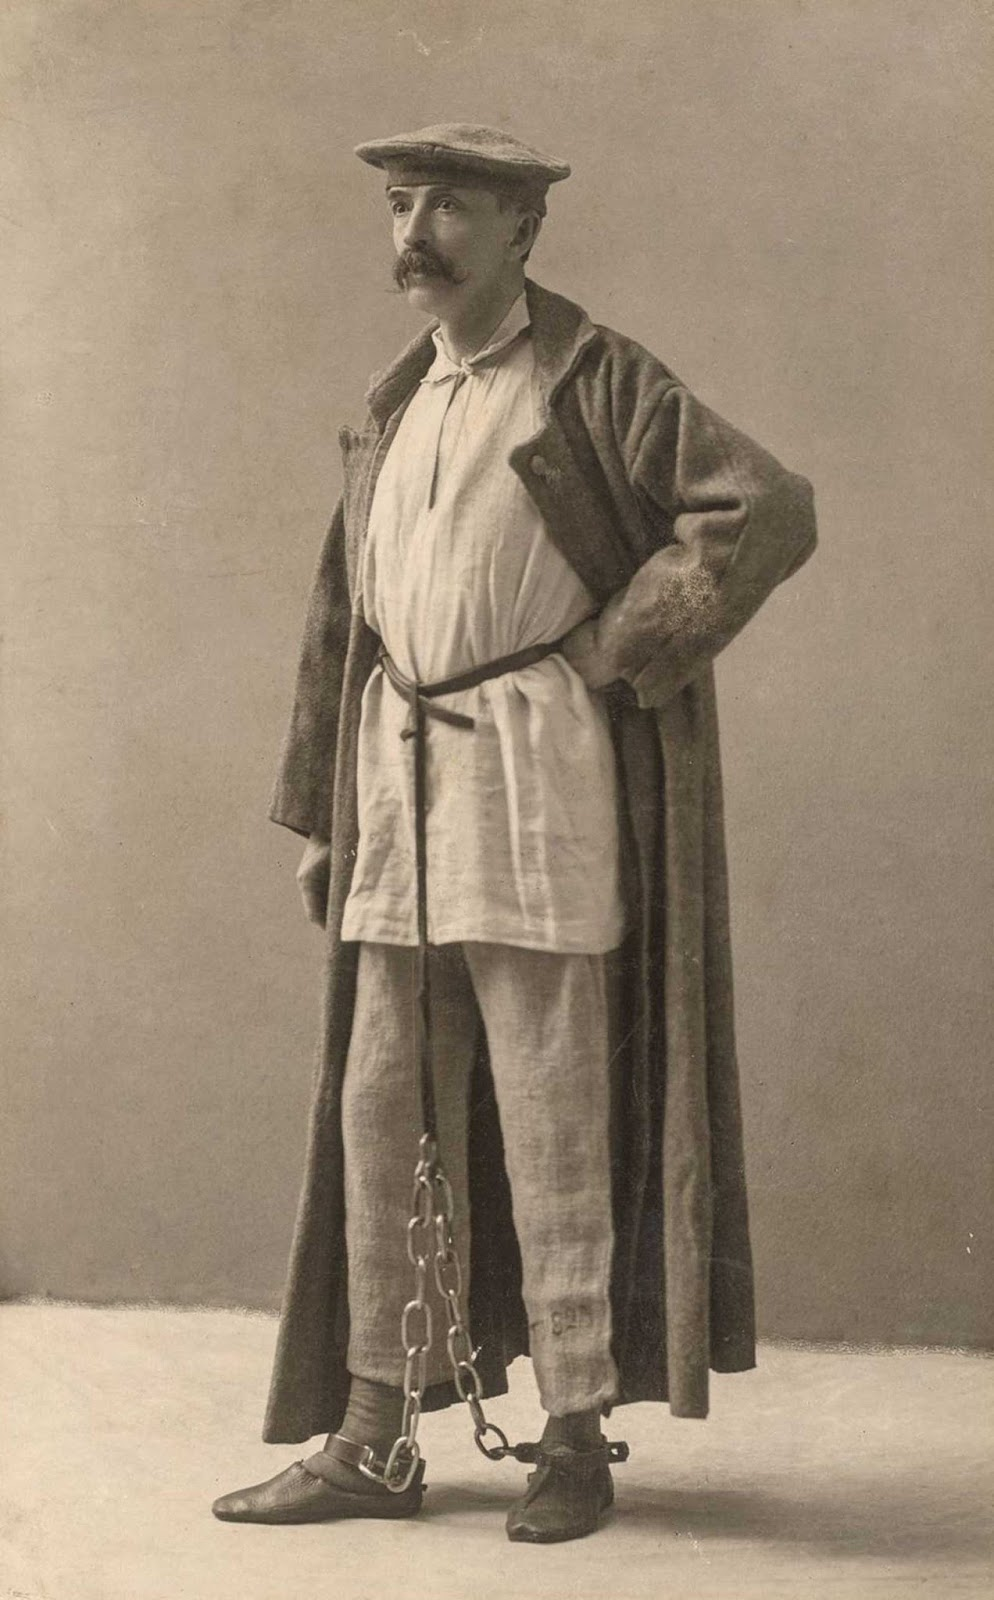 Author and photographer George Kennan poses in Siberian exile dress, each piece given to him by an exile from the dress he had worn.